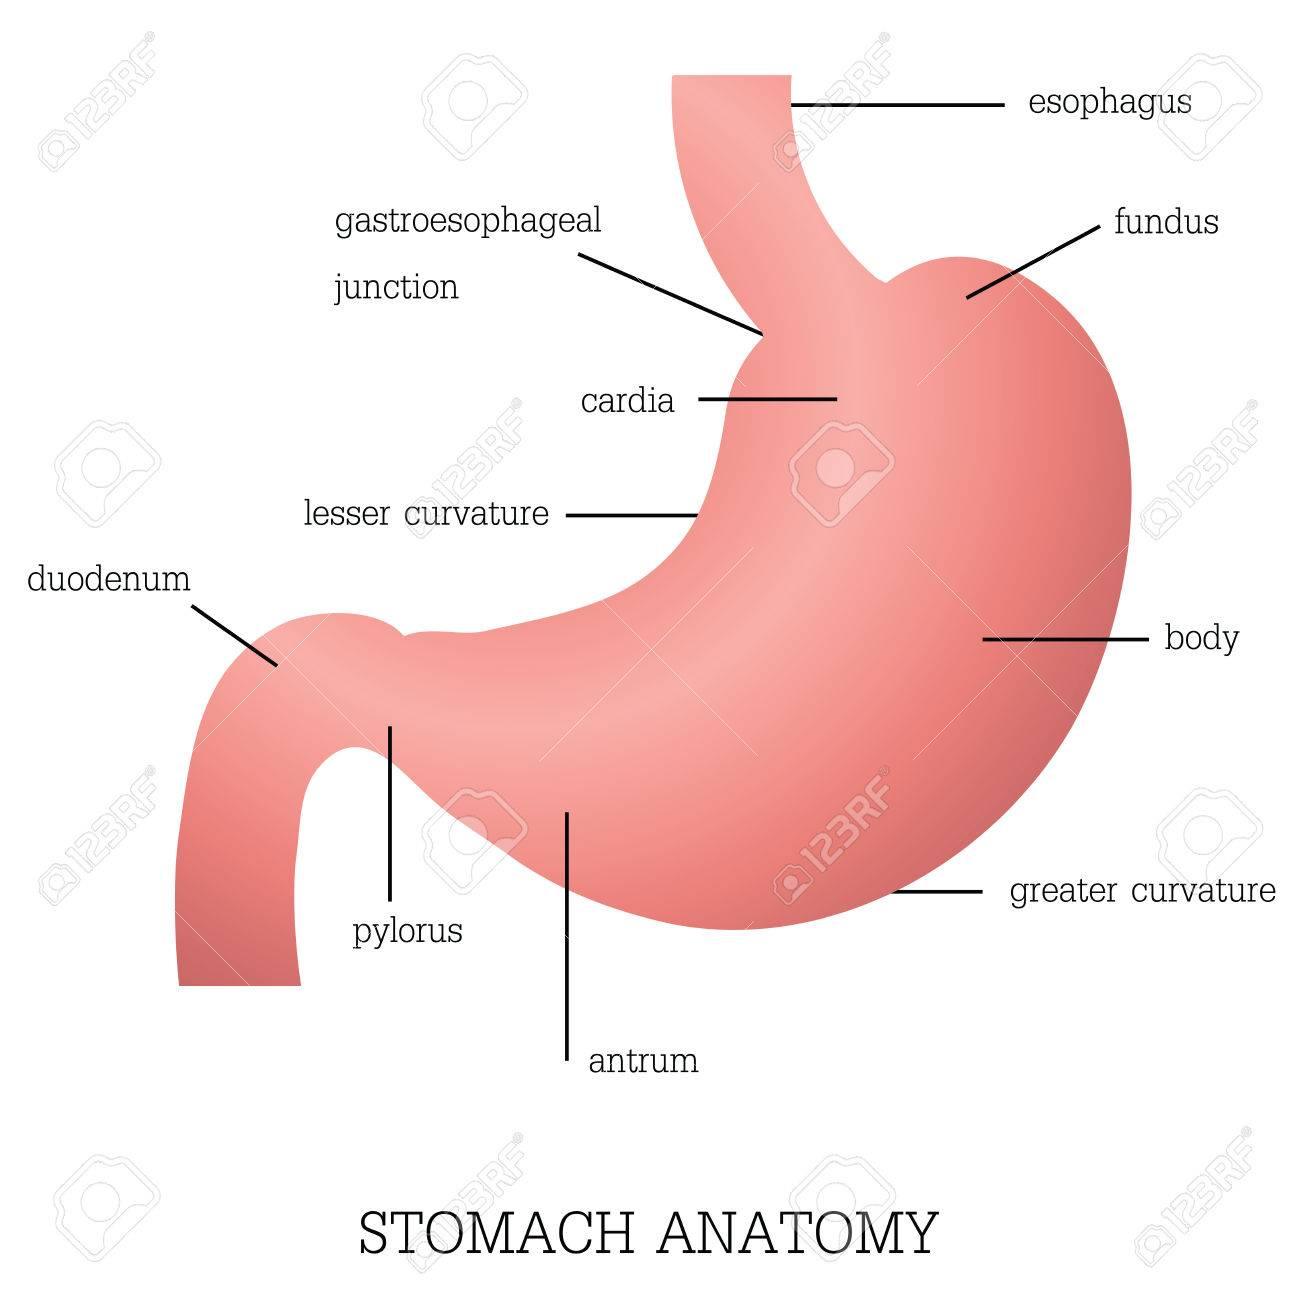 Structure And Function Of Stomach Anatomy System Isolated On